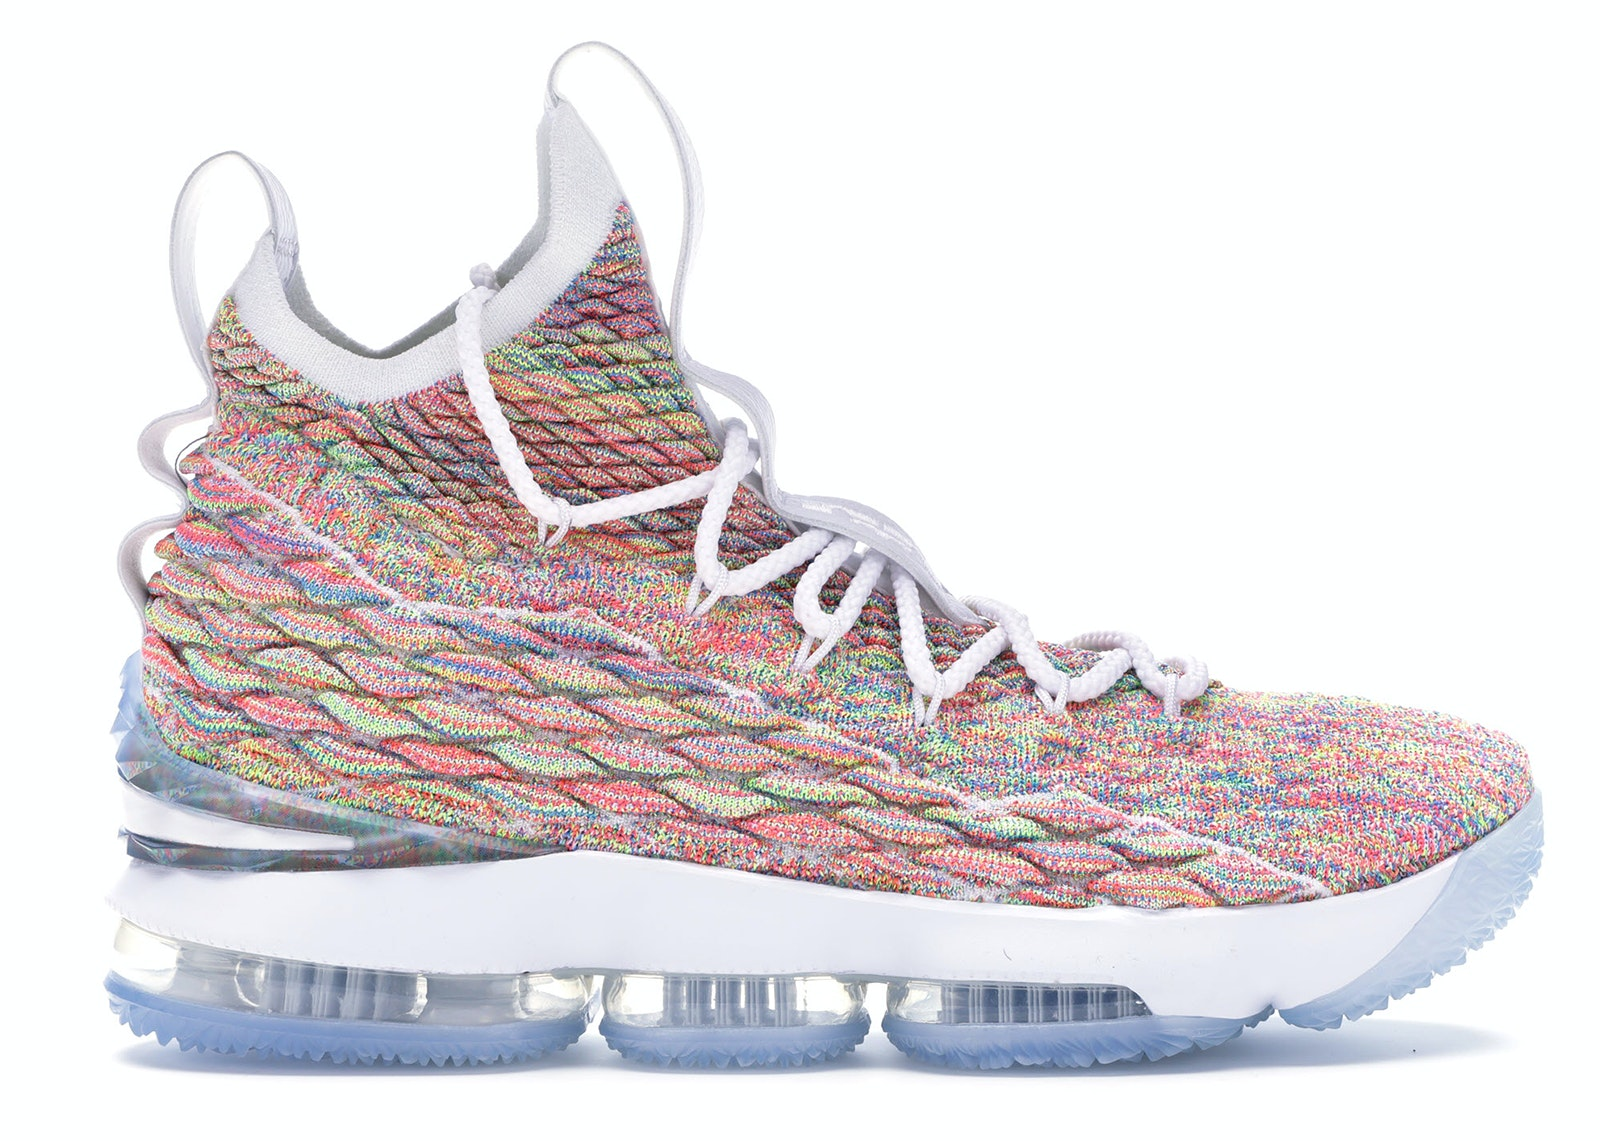 LeBron 15 Cereal